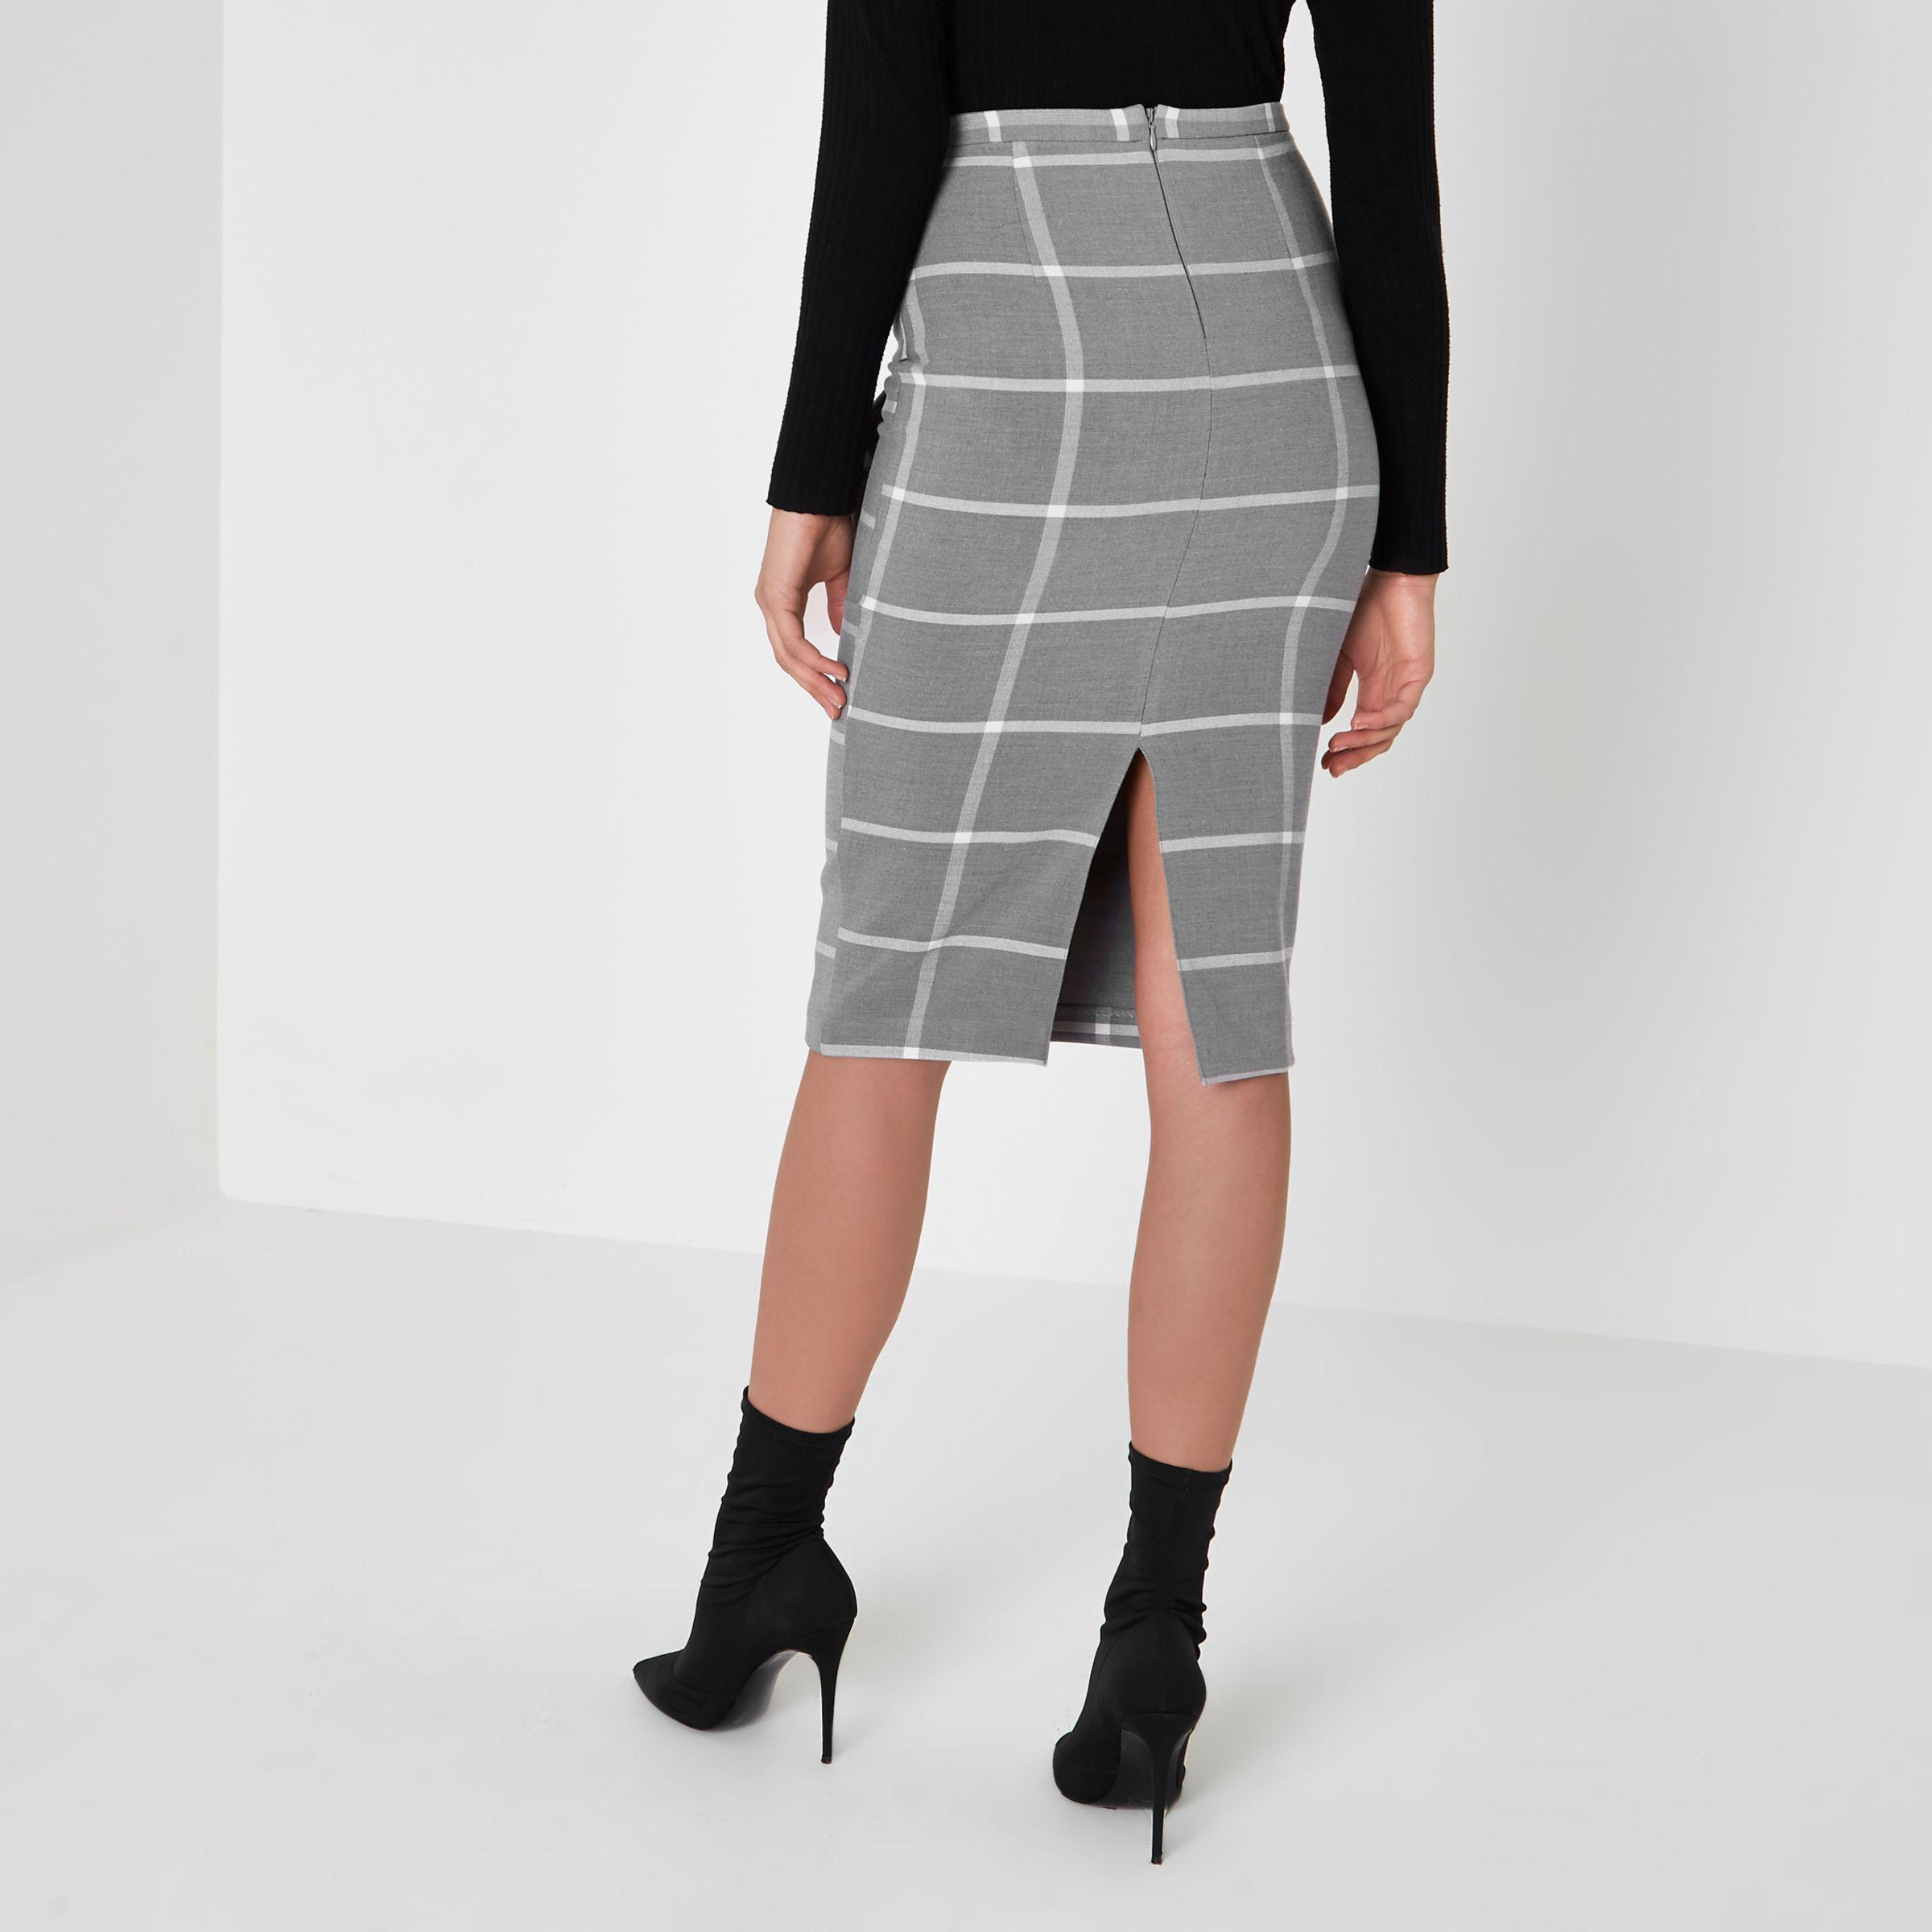 c63a63e297 River Island Grey Wide Check Bow Front Pencil Skirt in Gray - Lyst